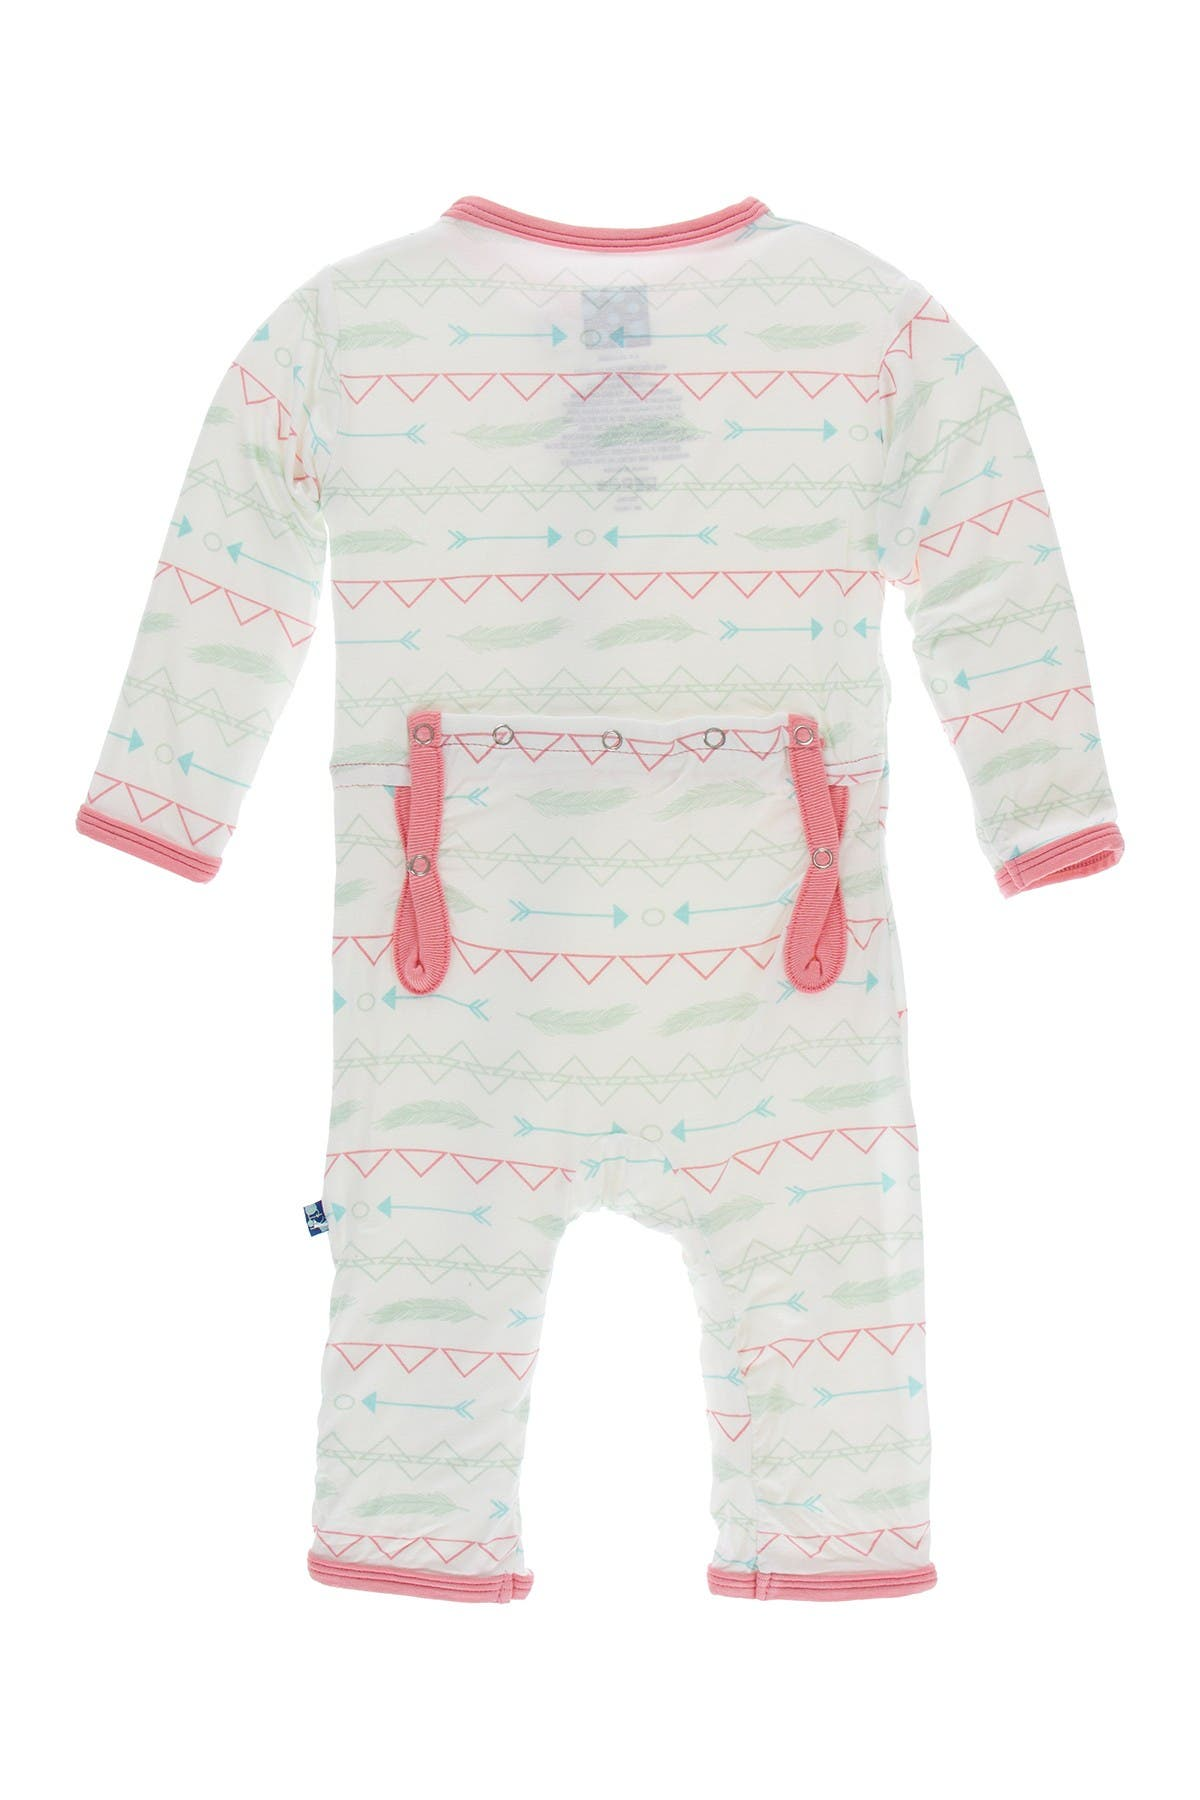 Image of KicKee Pants Print Coverall with Zipper in Pistachio Southwest